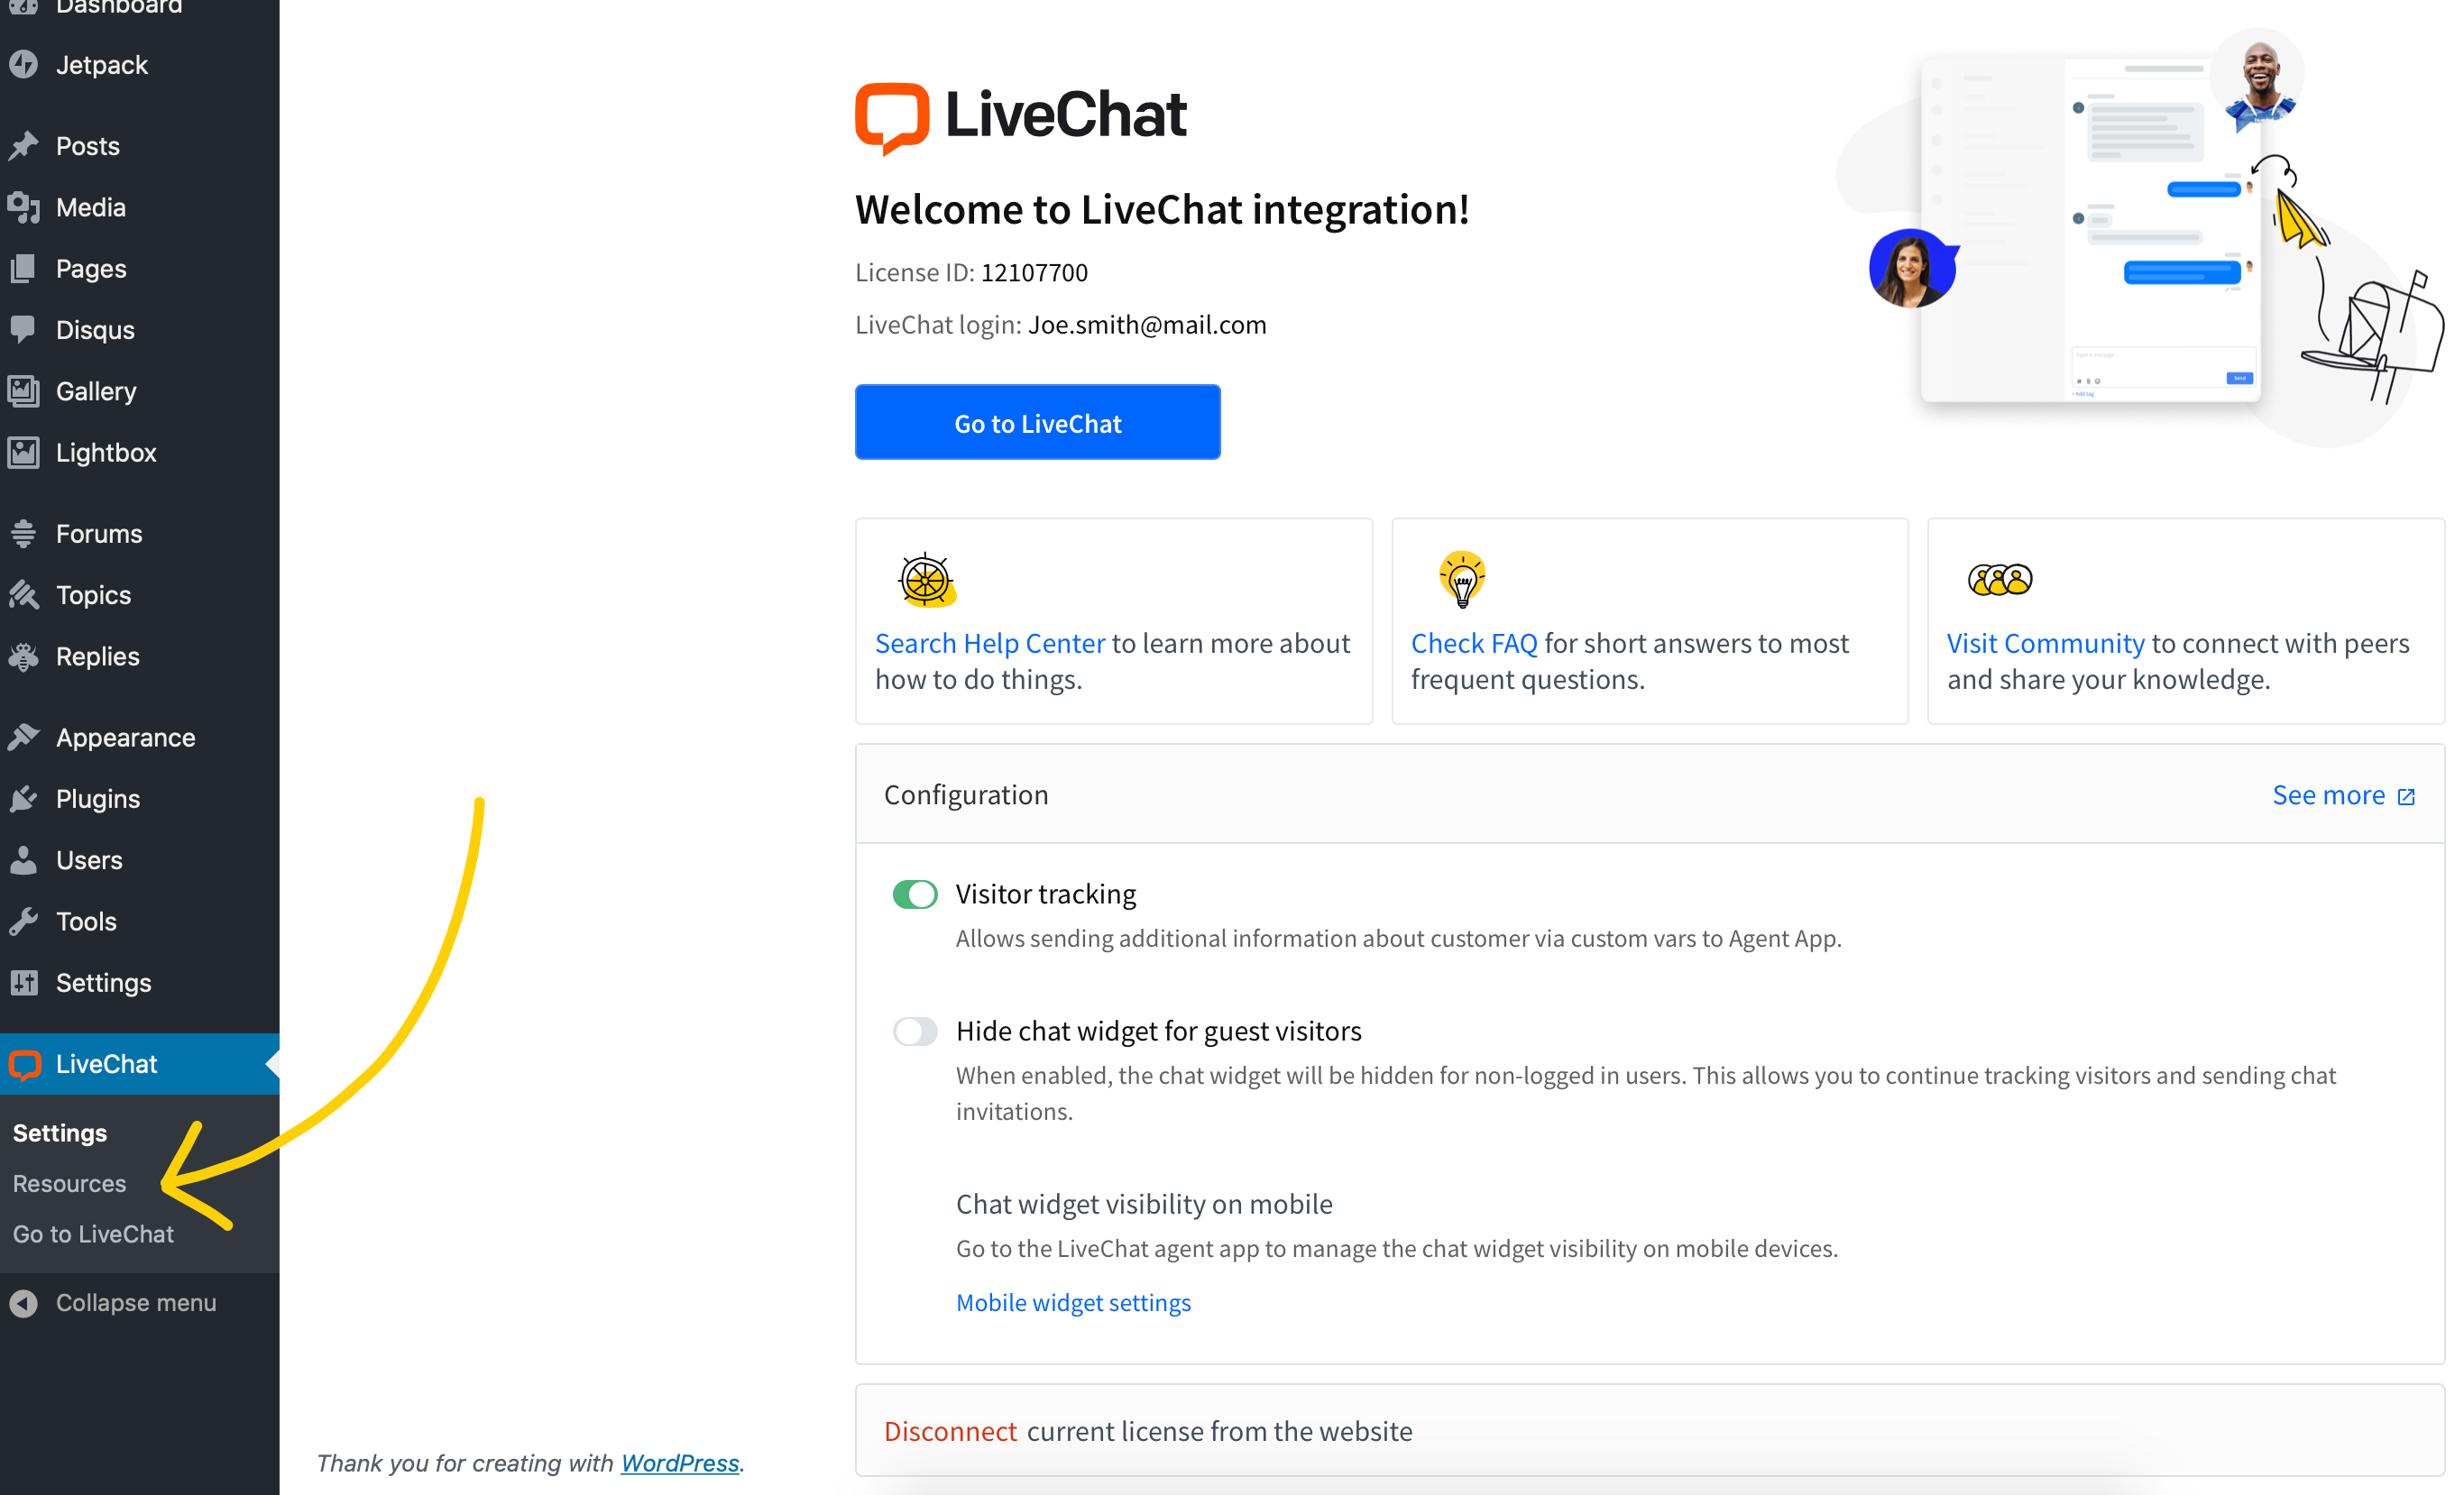 LiveChat resources